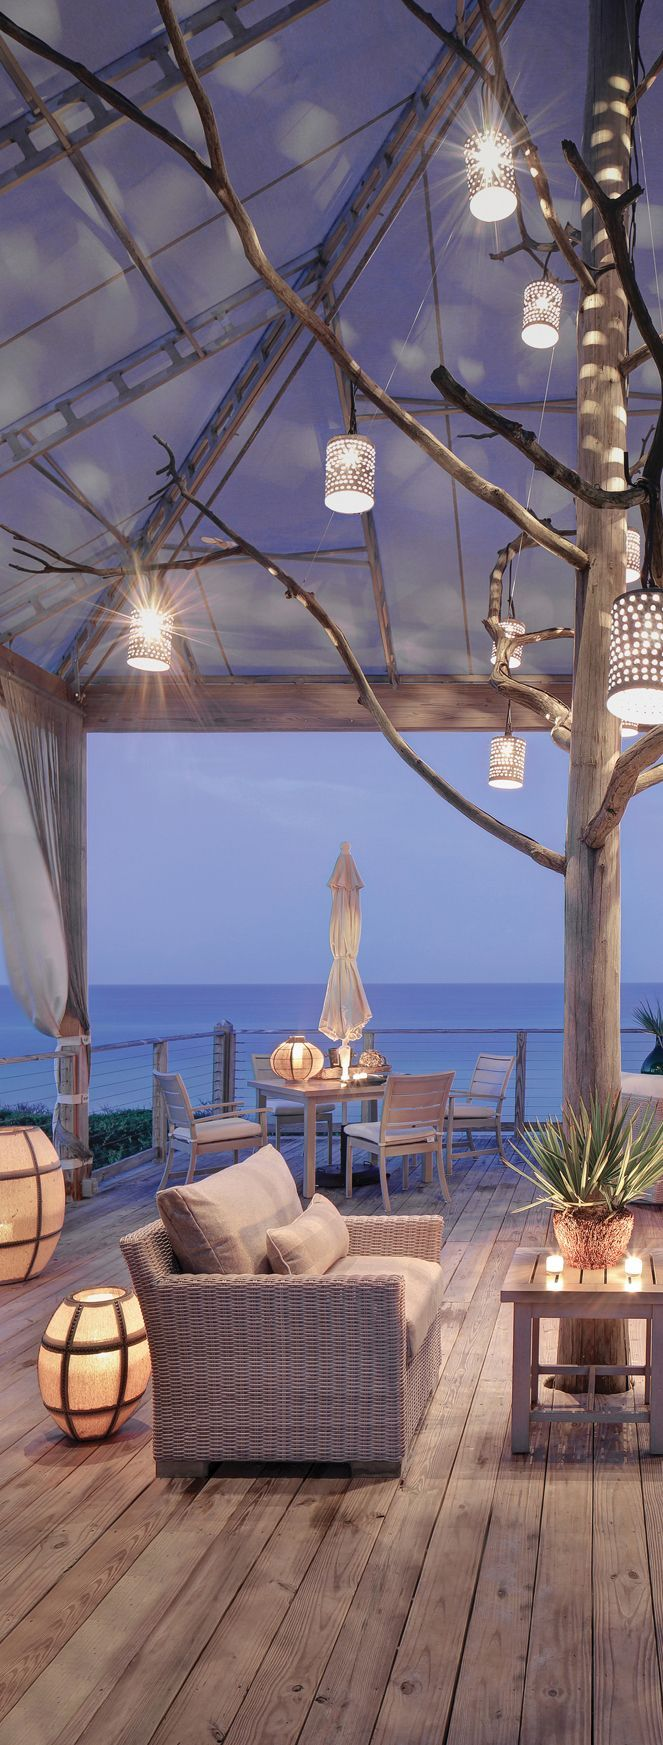 Outdoor Seating Area // beach house living style // interior decorating inspiration